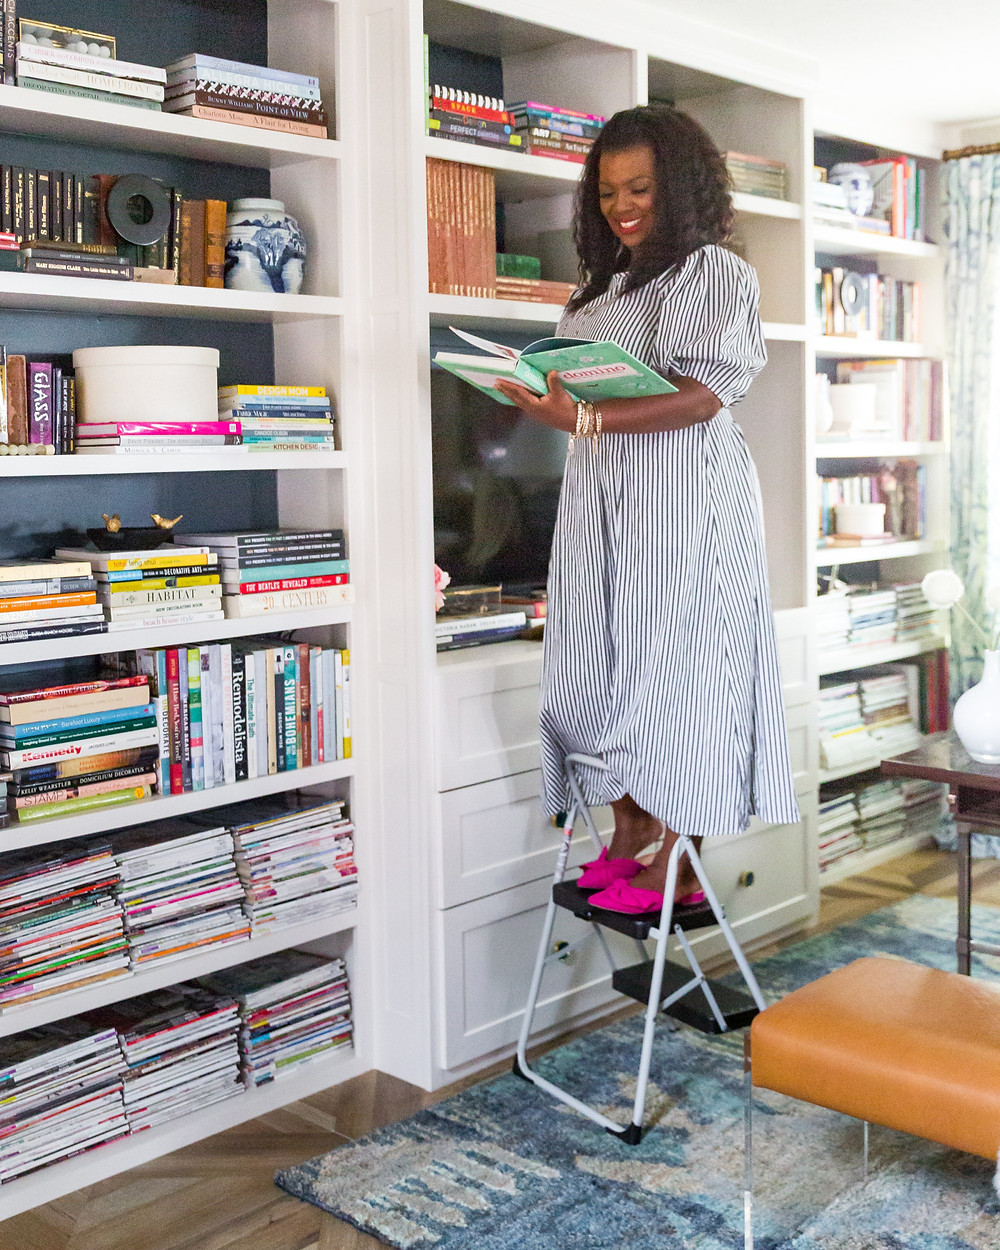 Veronica Solomon In her office with her book collection